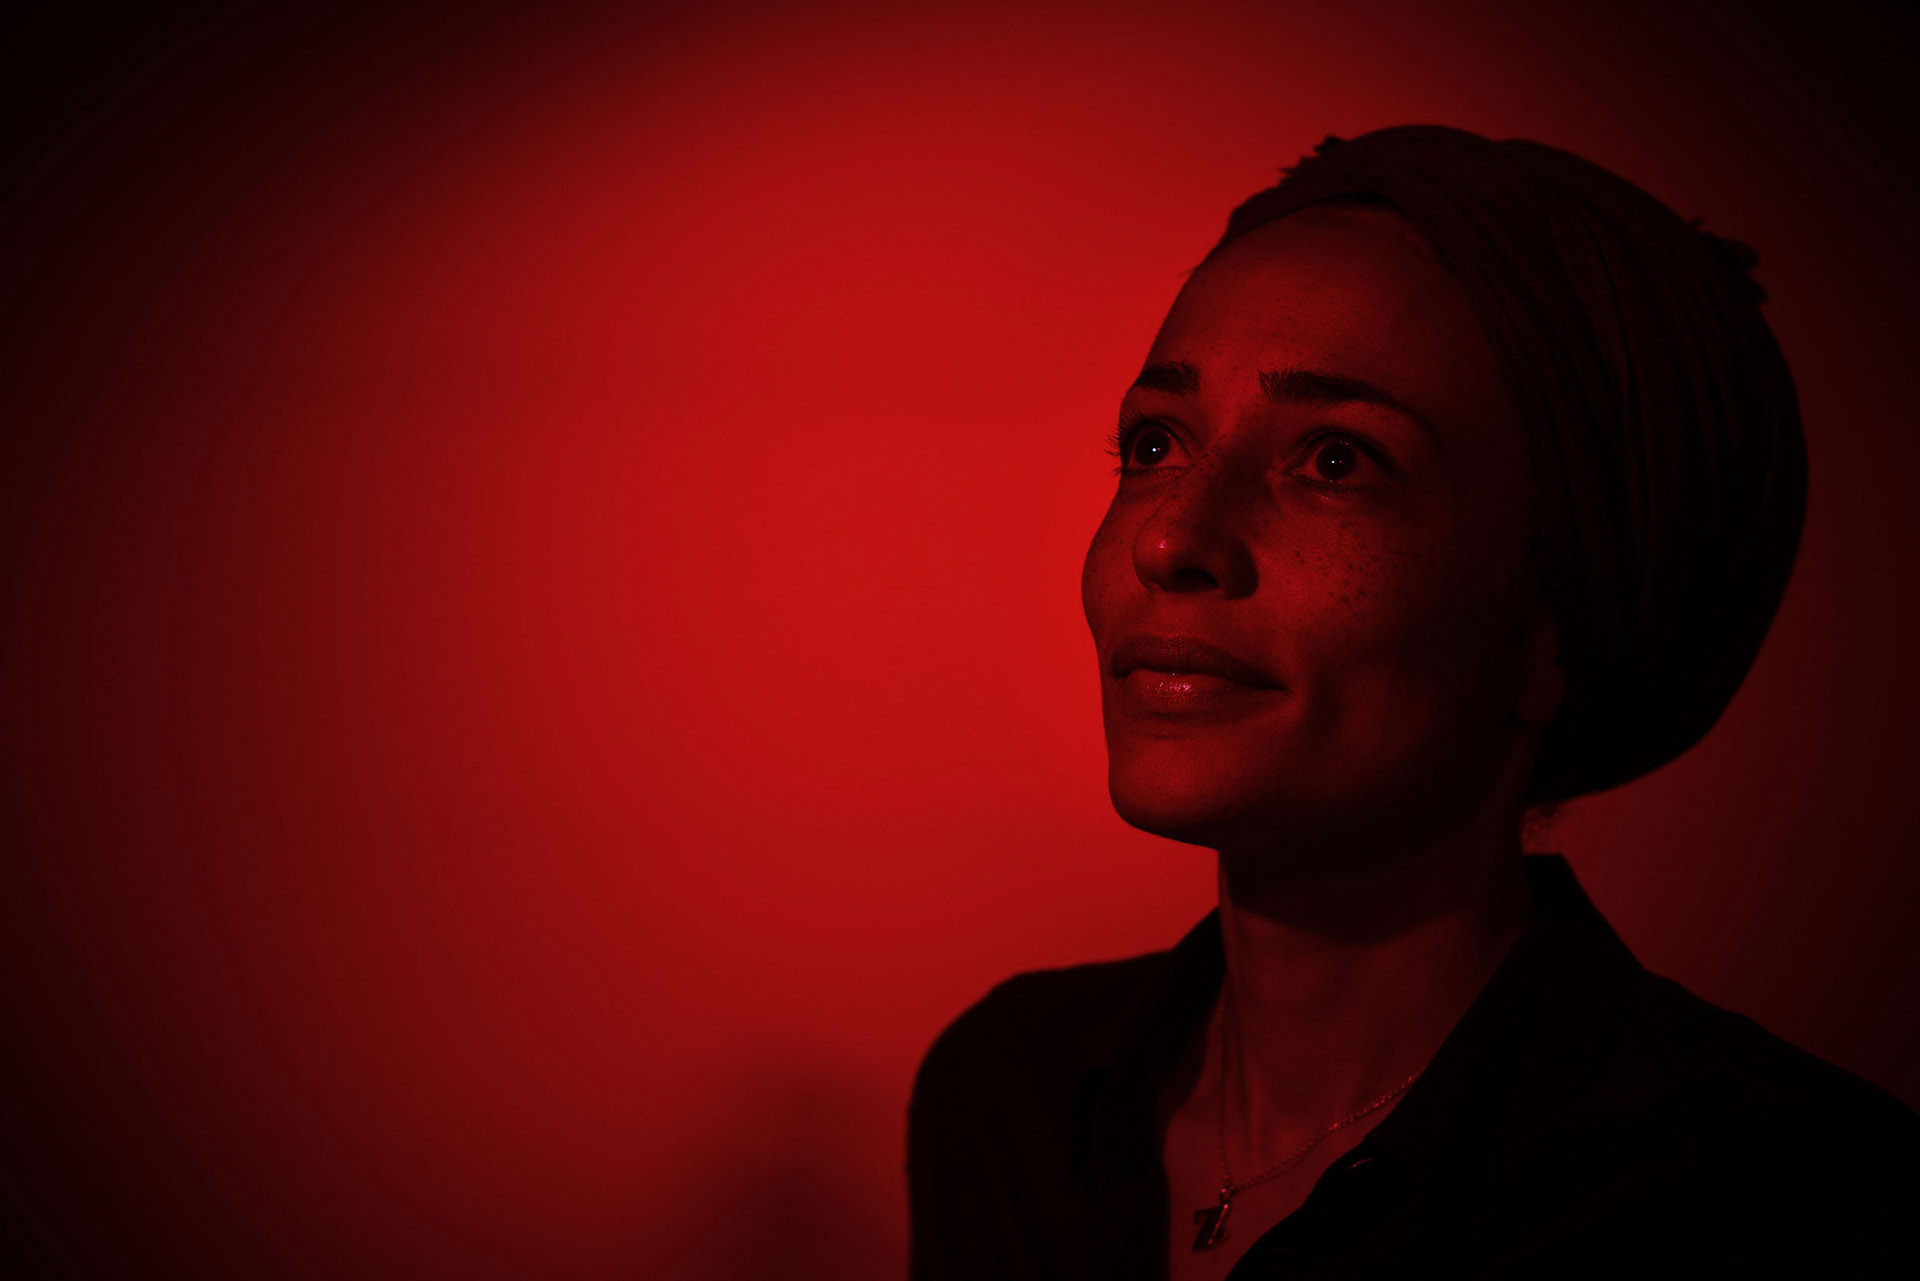 Photograph with red lighting of Writer Zadie Smith at Manchester Literary Festival portrait photographer Jon Parker Lee